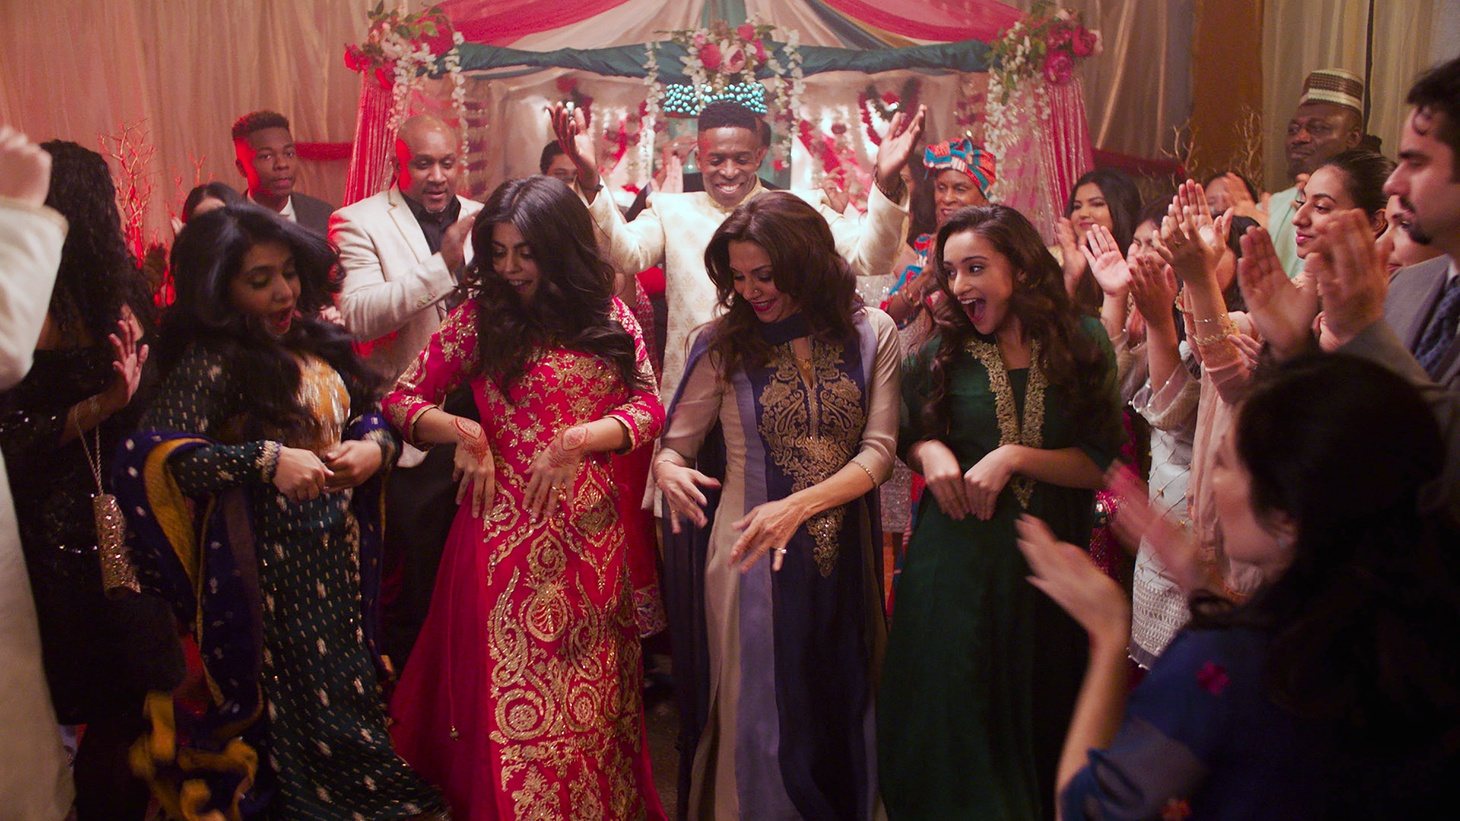 """""""Americanish"""" is a romantic comedy set in Queens, New York, and directed by Muslim filmmaker Iman Zawahry. It's part of the Los Angeles Pacific Film Festival, which explores the diverse geographical and cultural experiences of Asians and Pacific Islanders."""